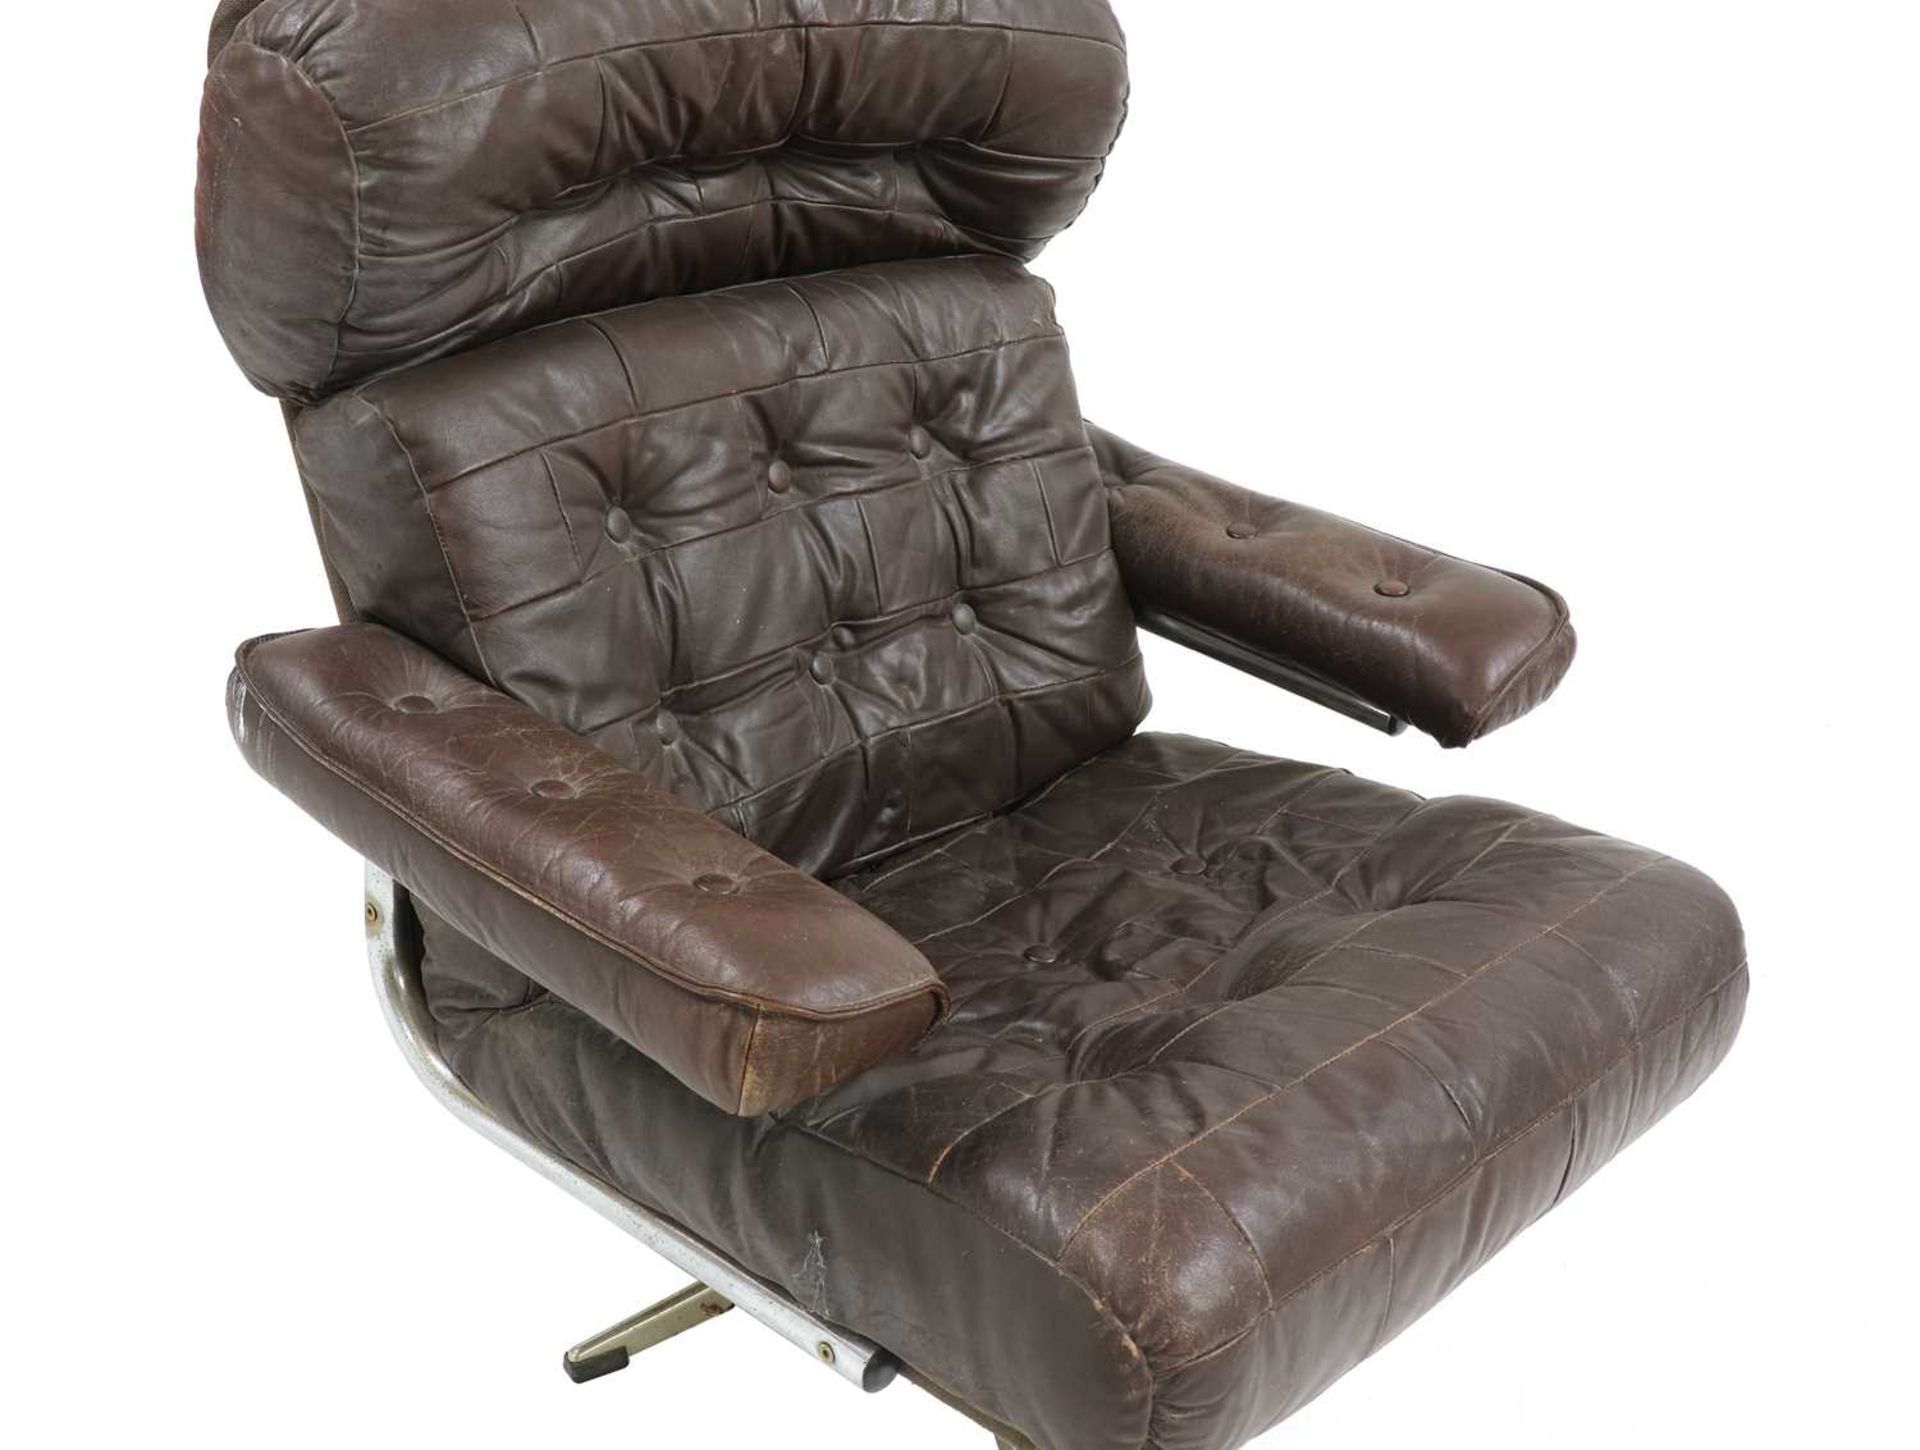 A chocolate leather lounger, - Image 2 of 4